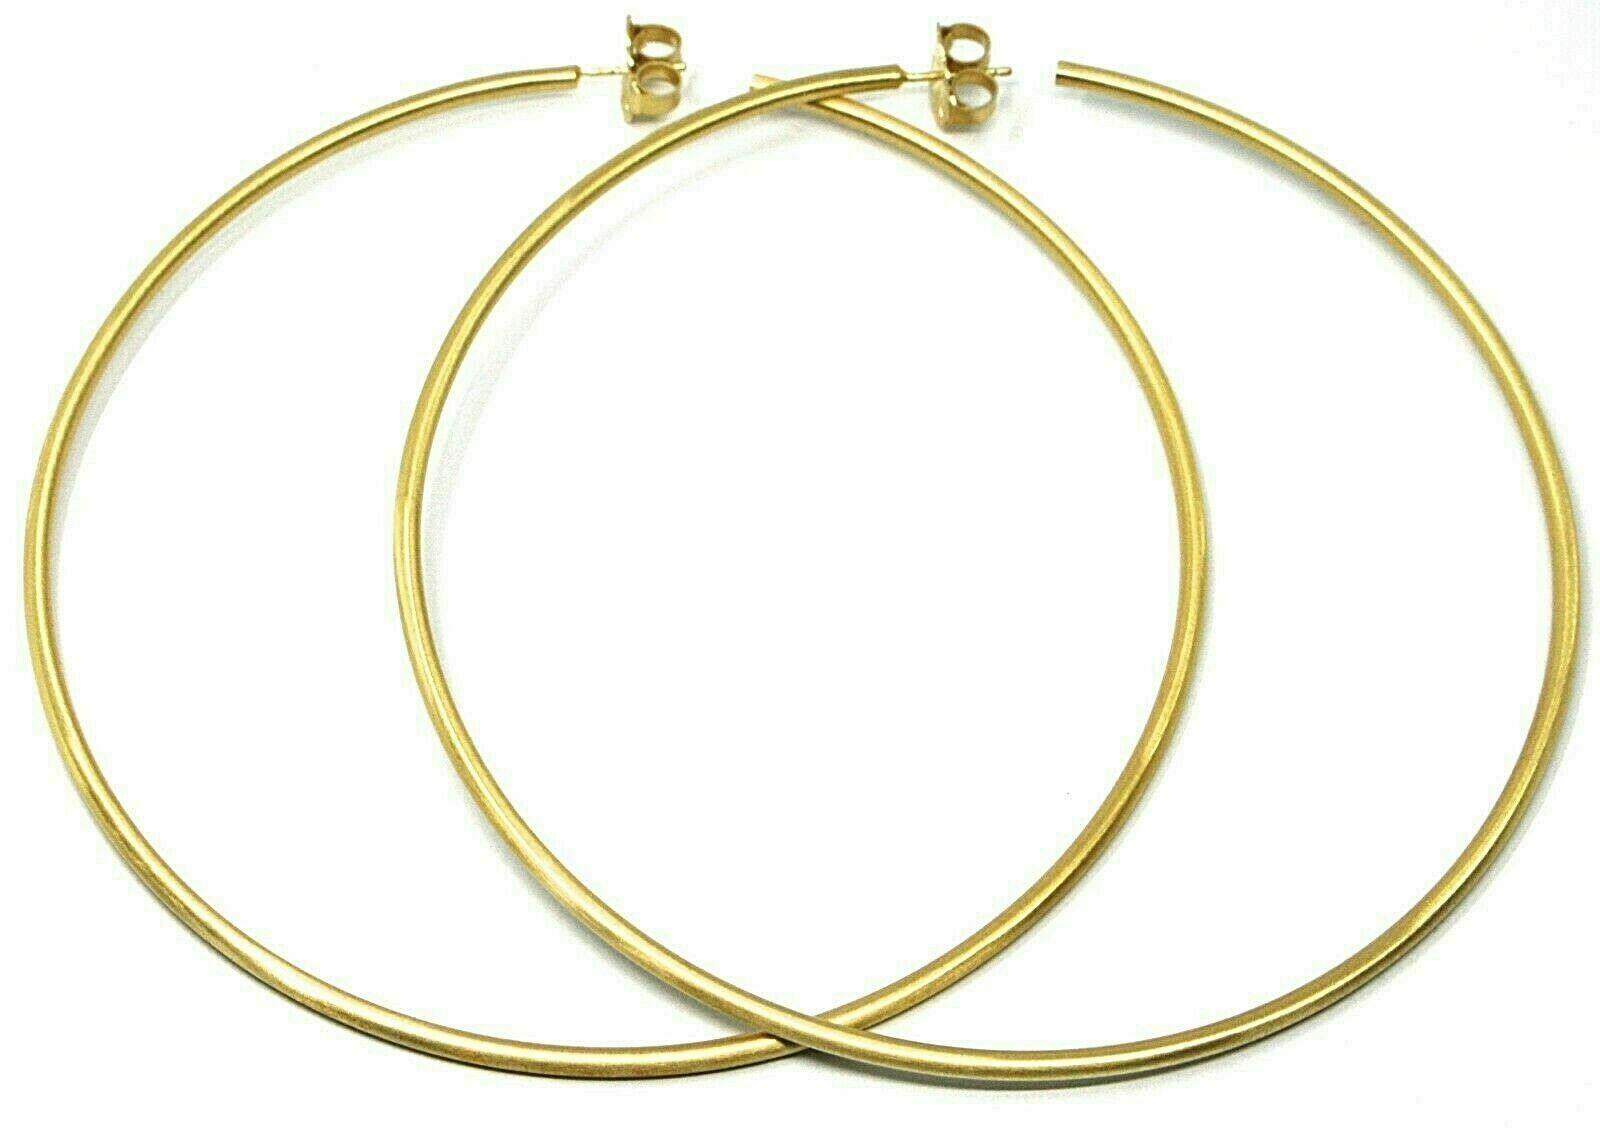 Silver Earrings 925 Circles Large Diameter 11 cm Thickness 2 mm Foiled Gold